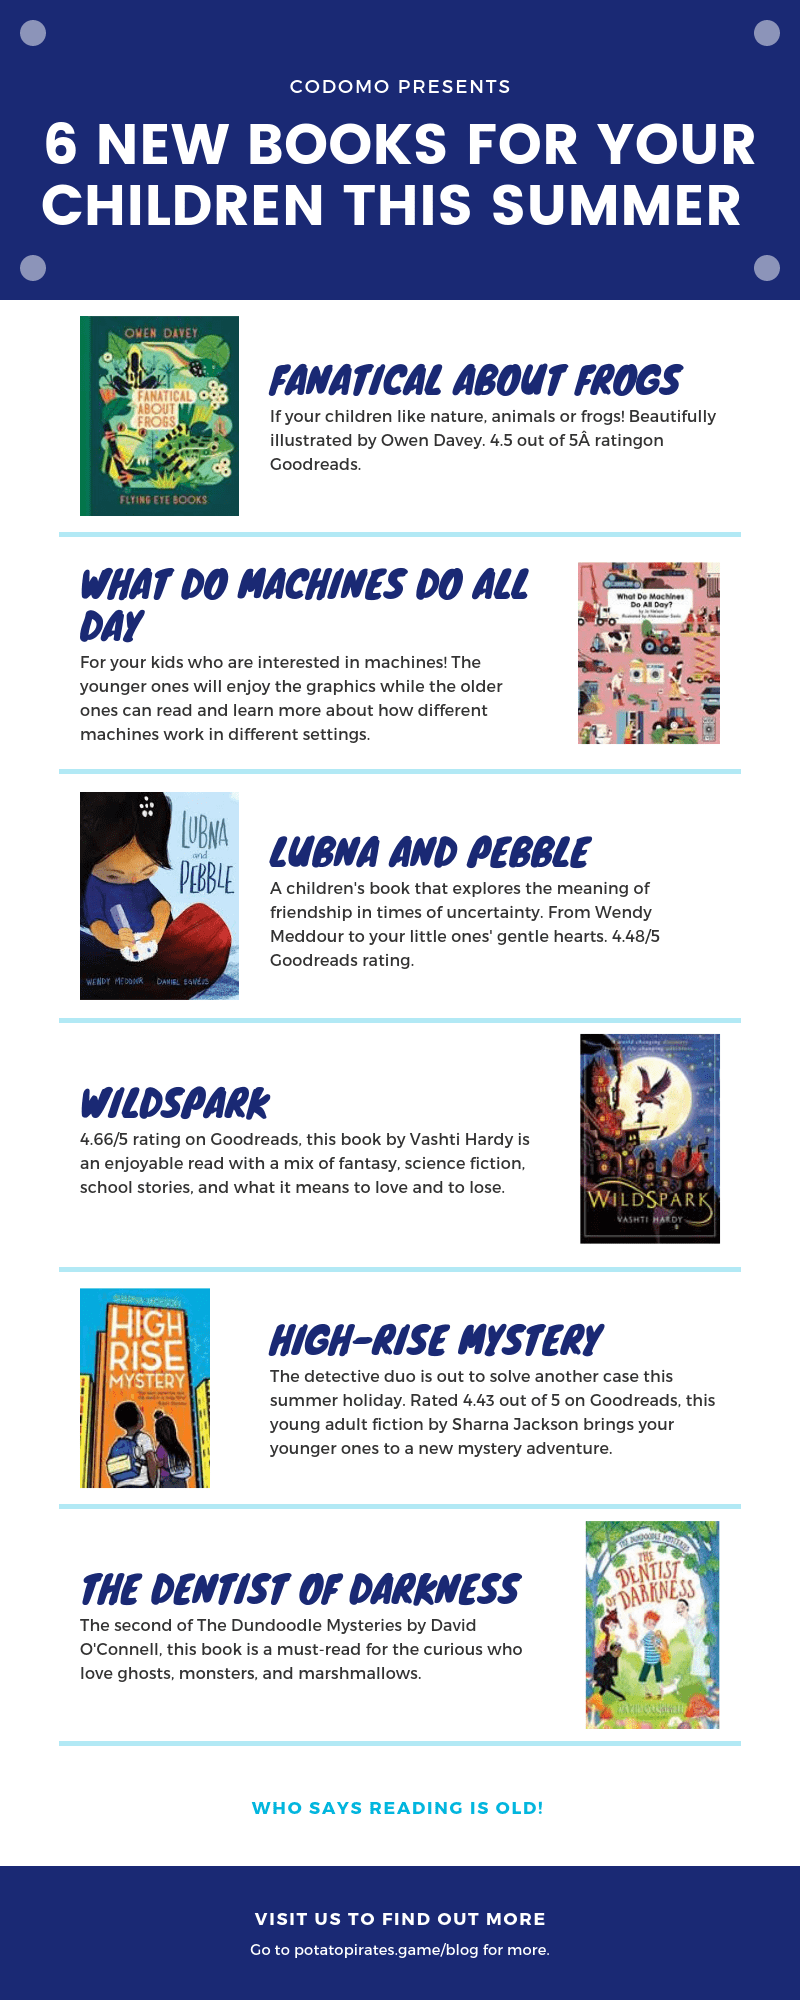 New books for your children this summer holidays 2019